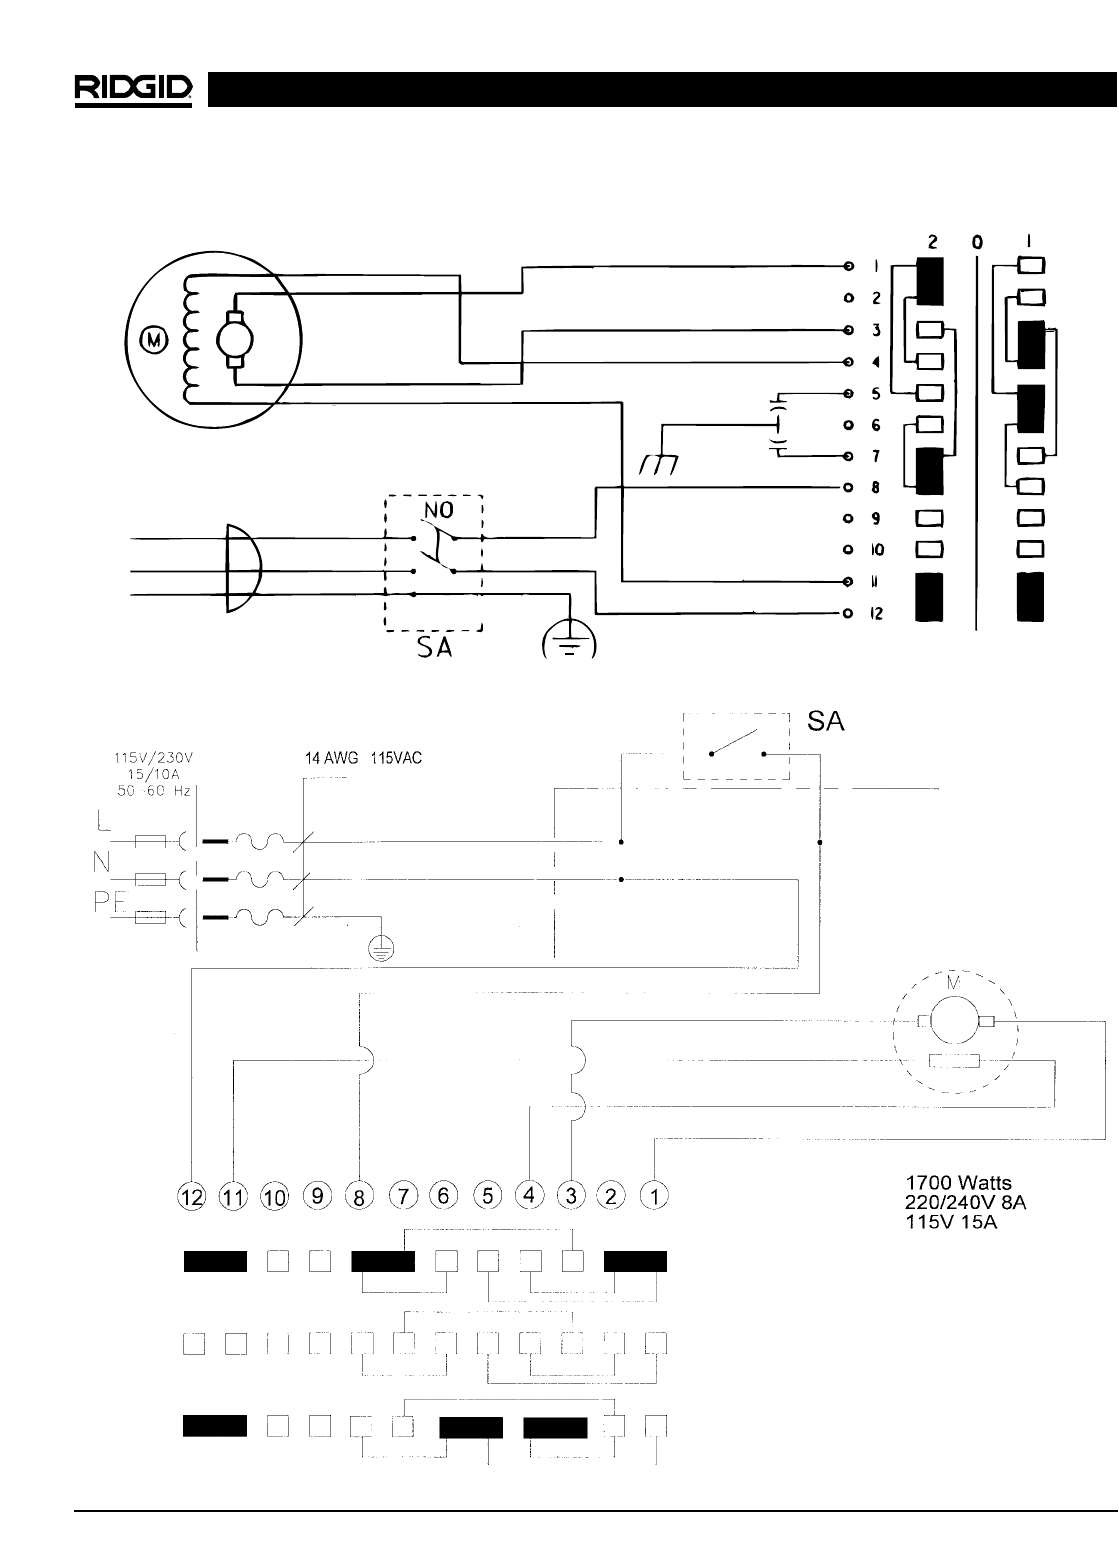 wiring diagram for emergency lighting switch dimarzio ridgid 300 download